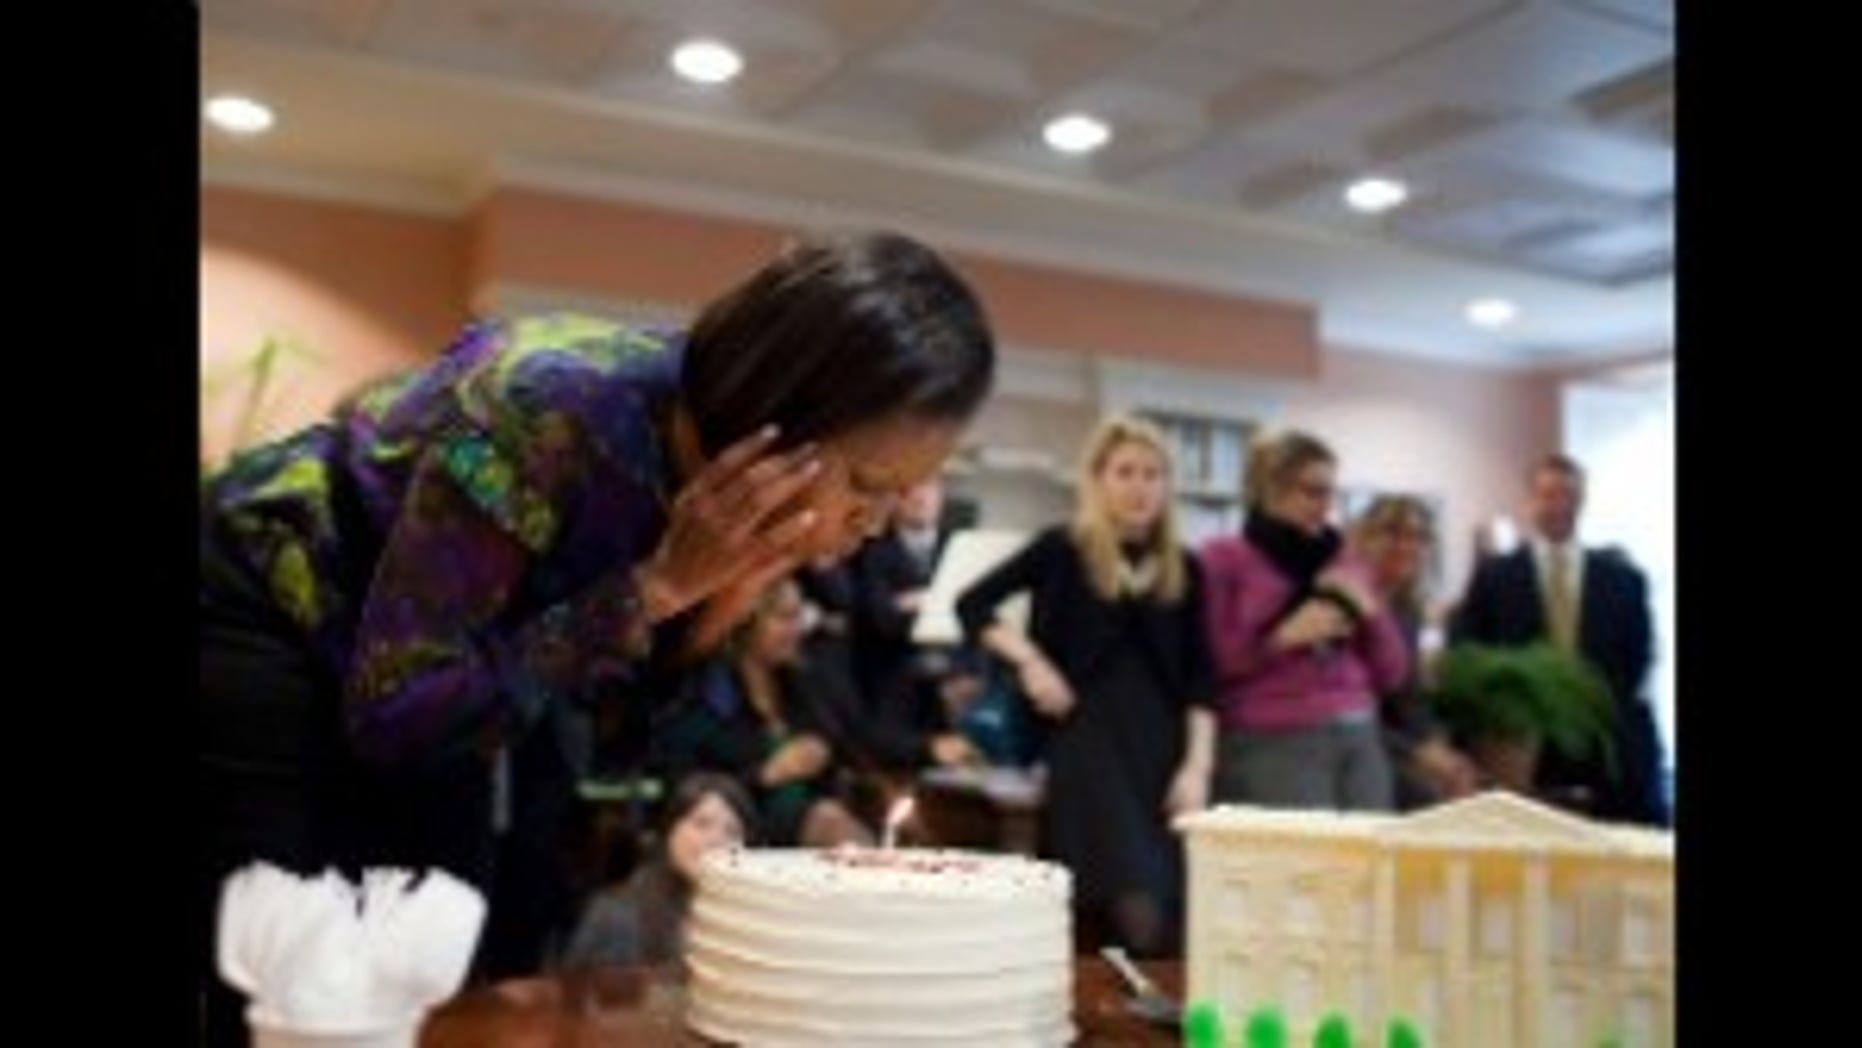 First Lady Michelle Obama has an early birthday celebration with her staff in the East Wing of the White House on Friday, Jan 15, 2010. (WH Photo)